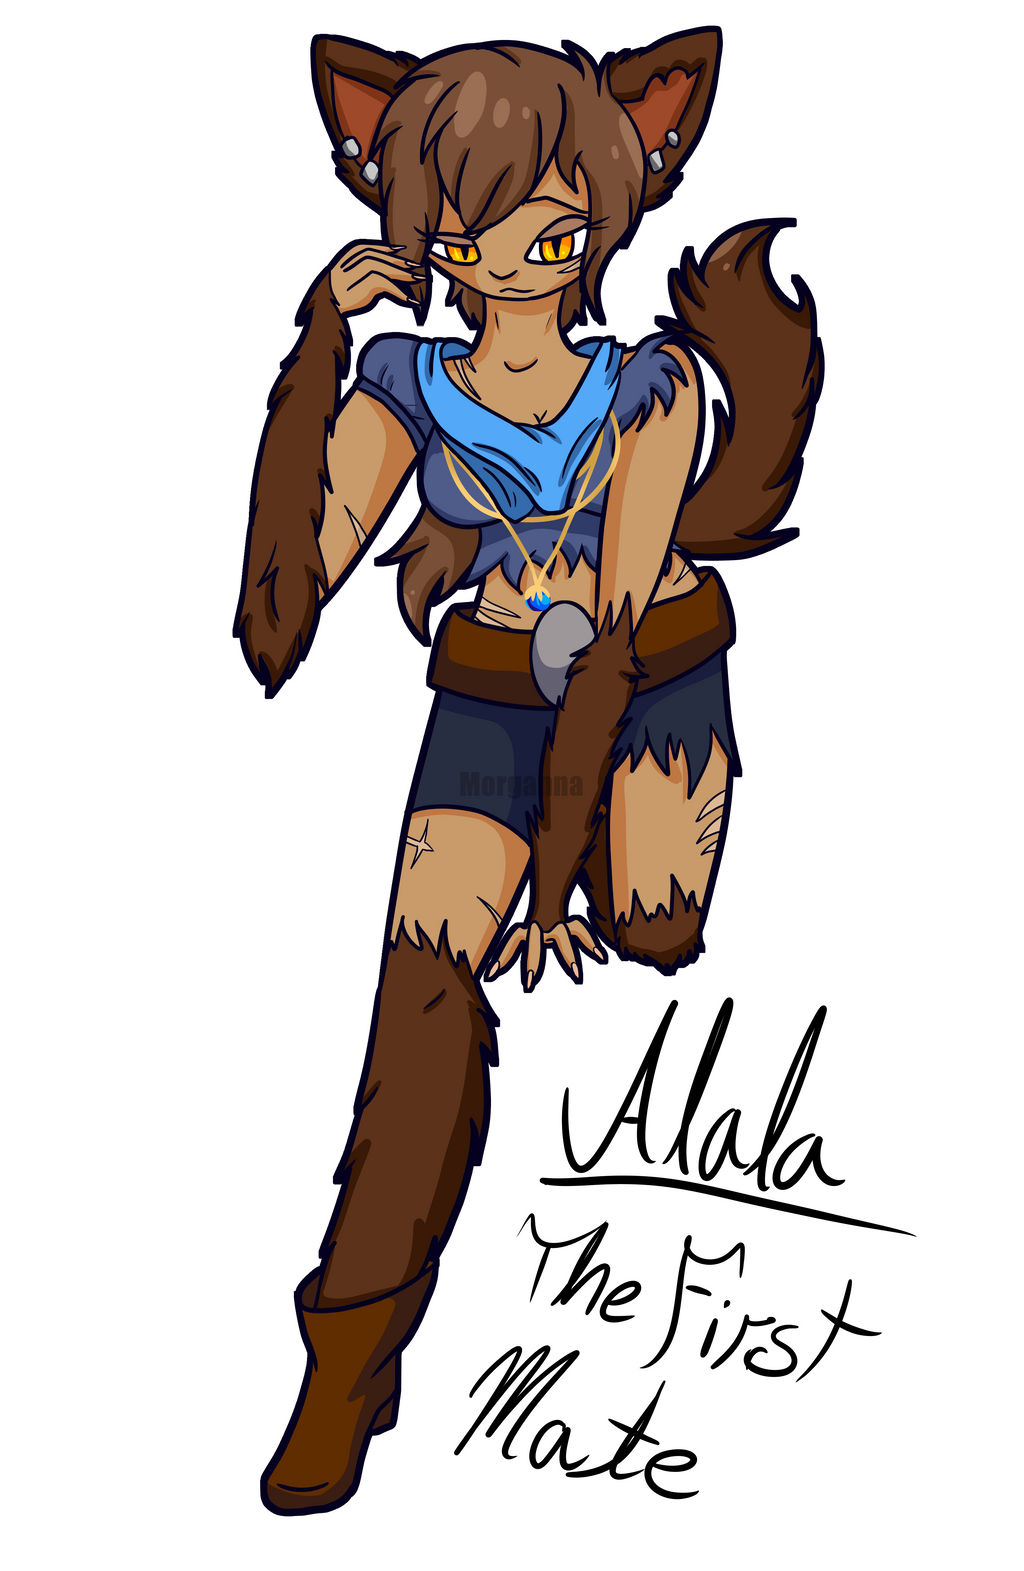 Alala pirate full body ref by Mo-fox